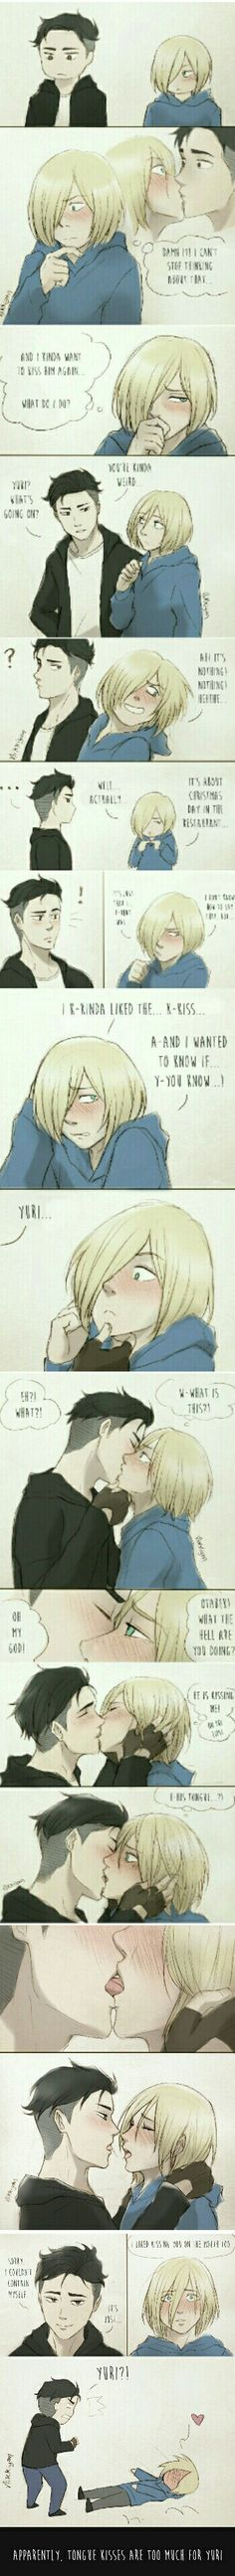 French kisses are too much for yuri Otayuri kiss . Yuri Plisetsky. Otabek Altin . Yuri on ice. YOI  Original fan art taken from: nikkiyan.tumblr.com